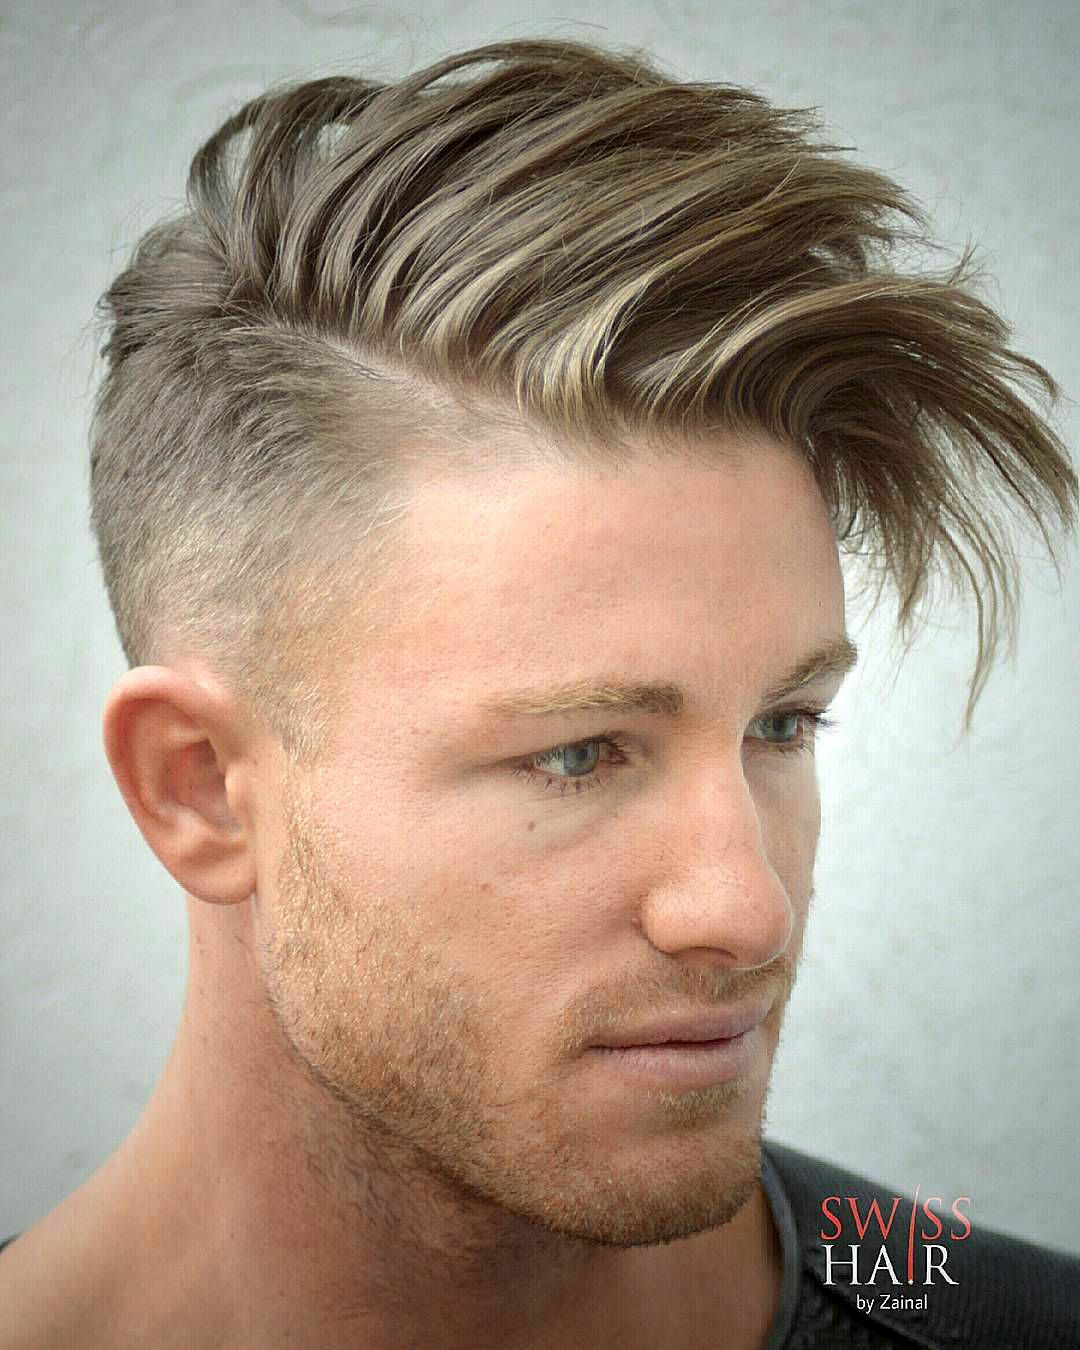 20 Long Hairstyles For Men To Get In 2018 20 Long Hairstyles For